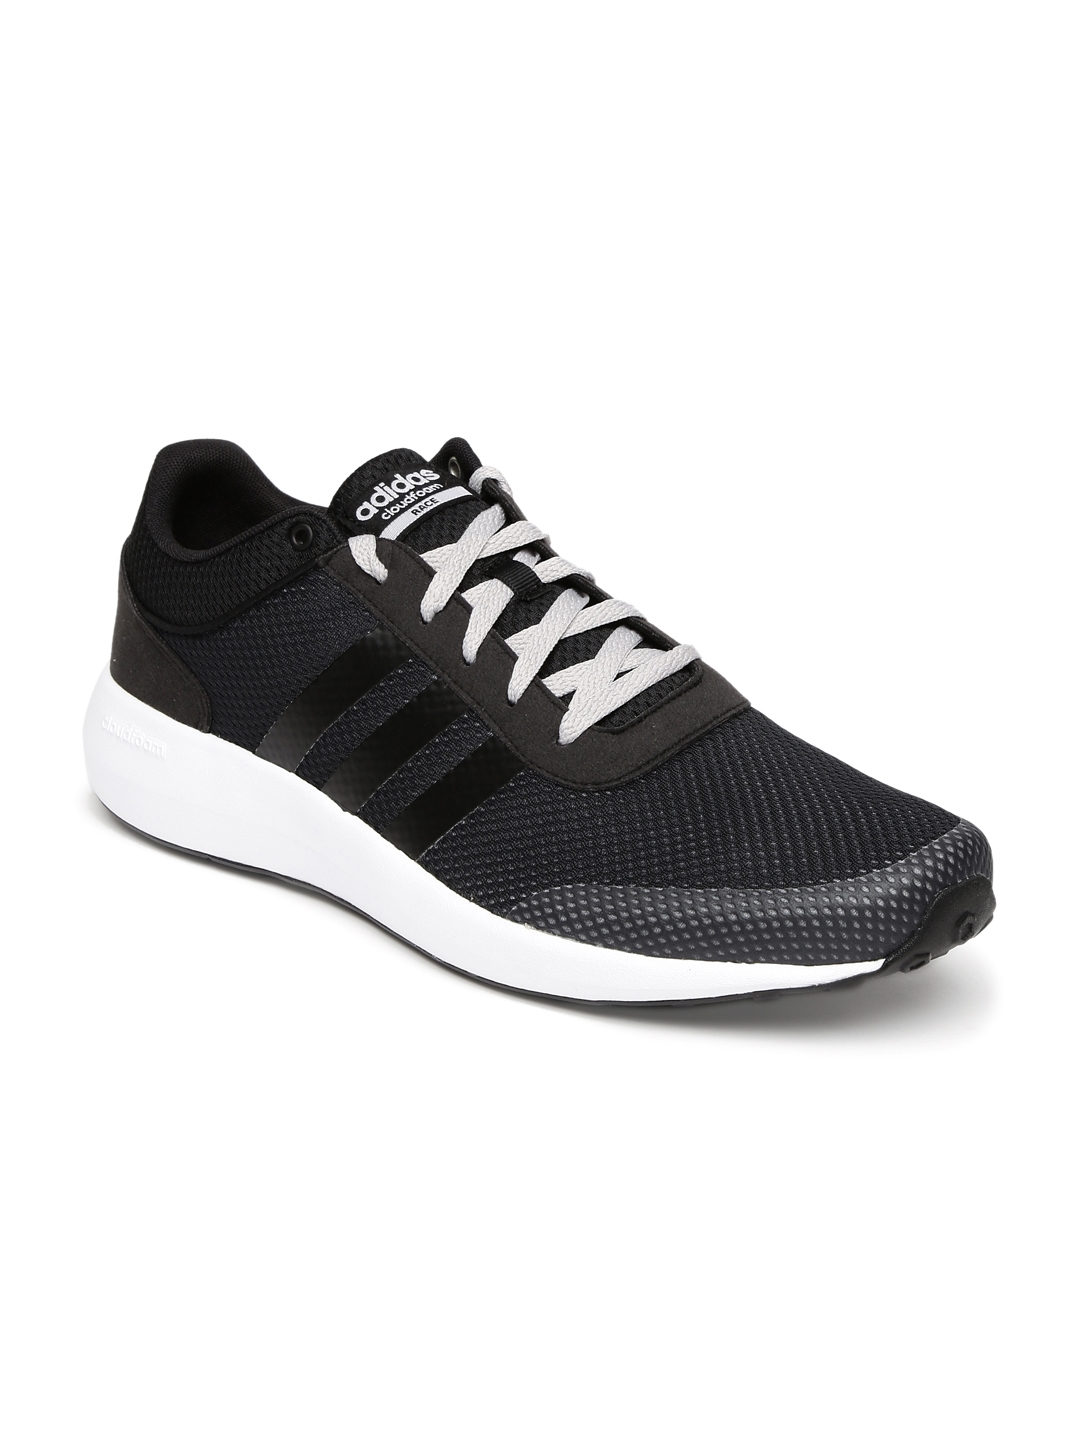 in: adidas neo Running Shoes / Sport Shoes: Shoes